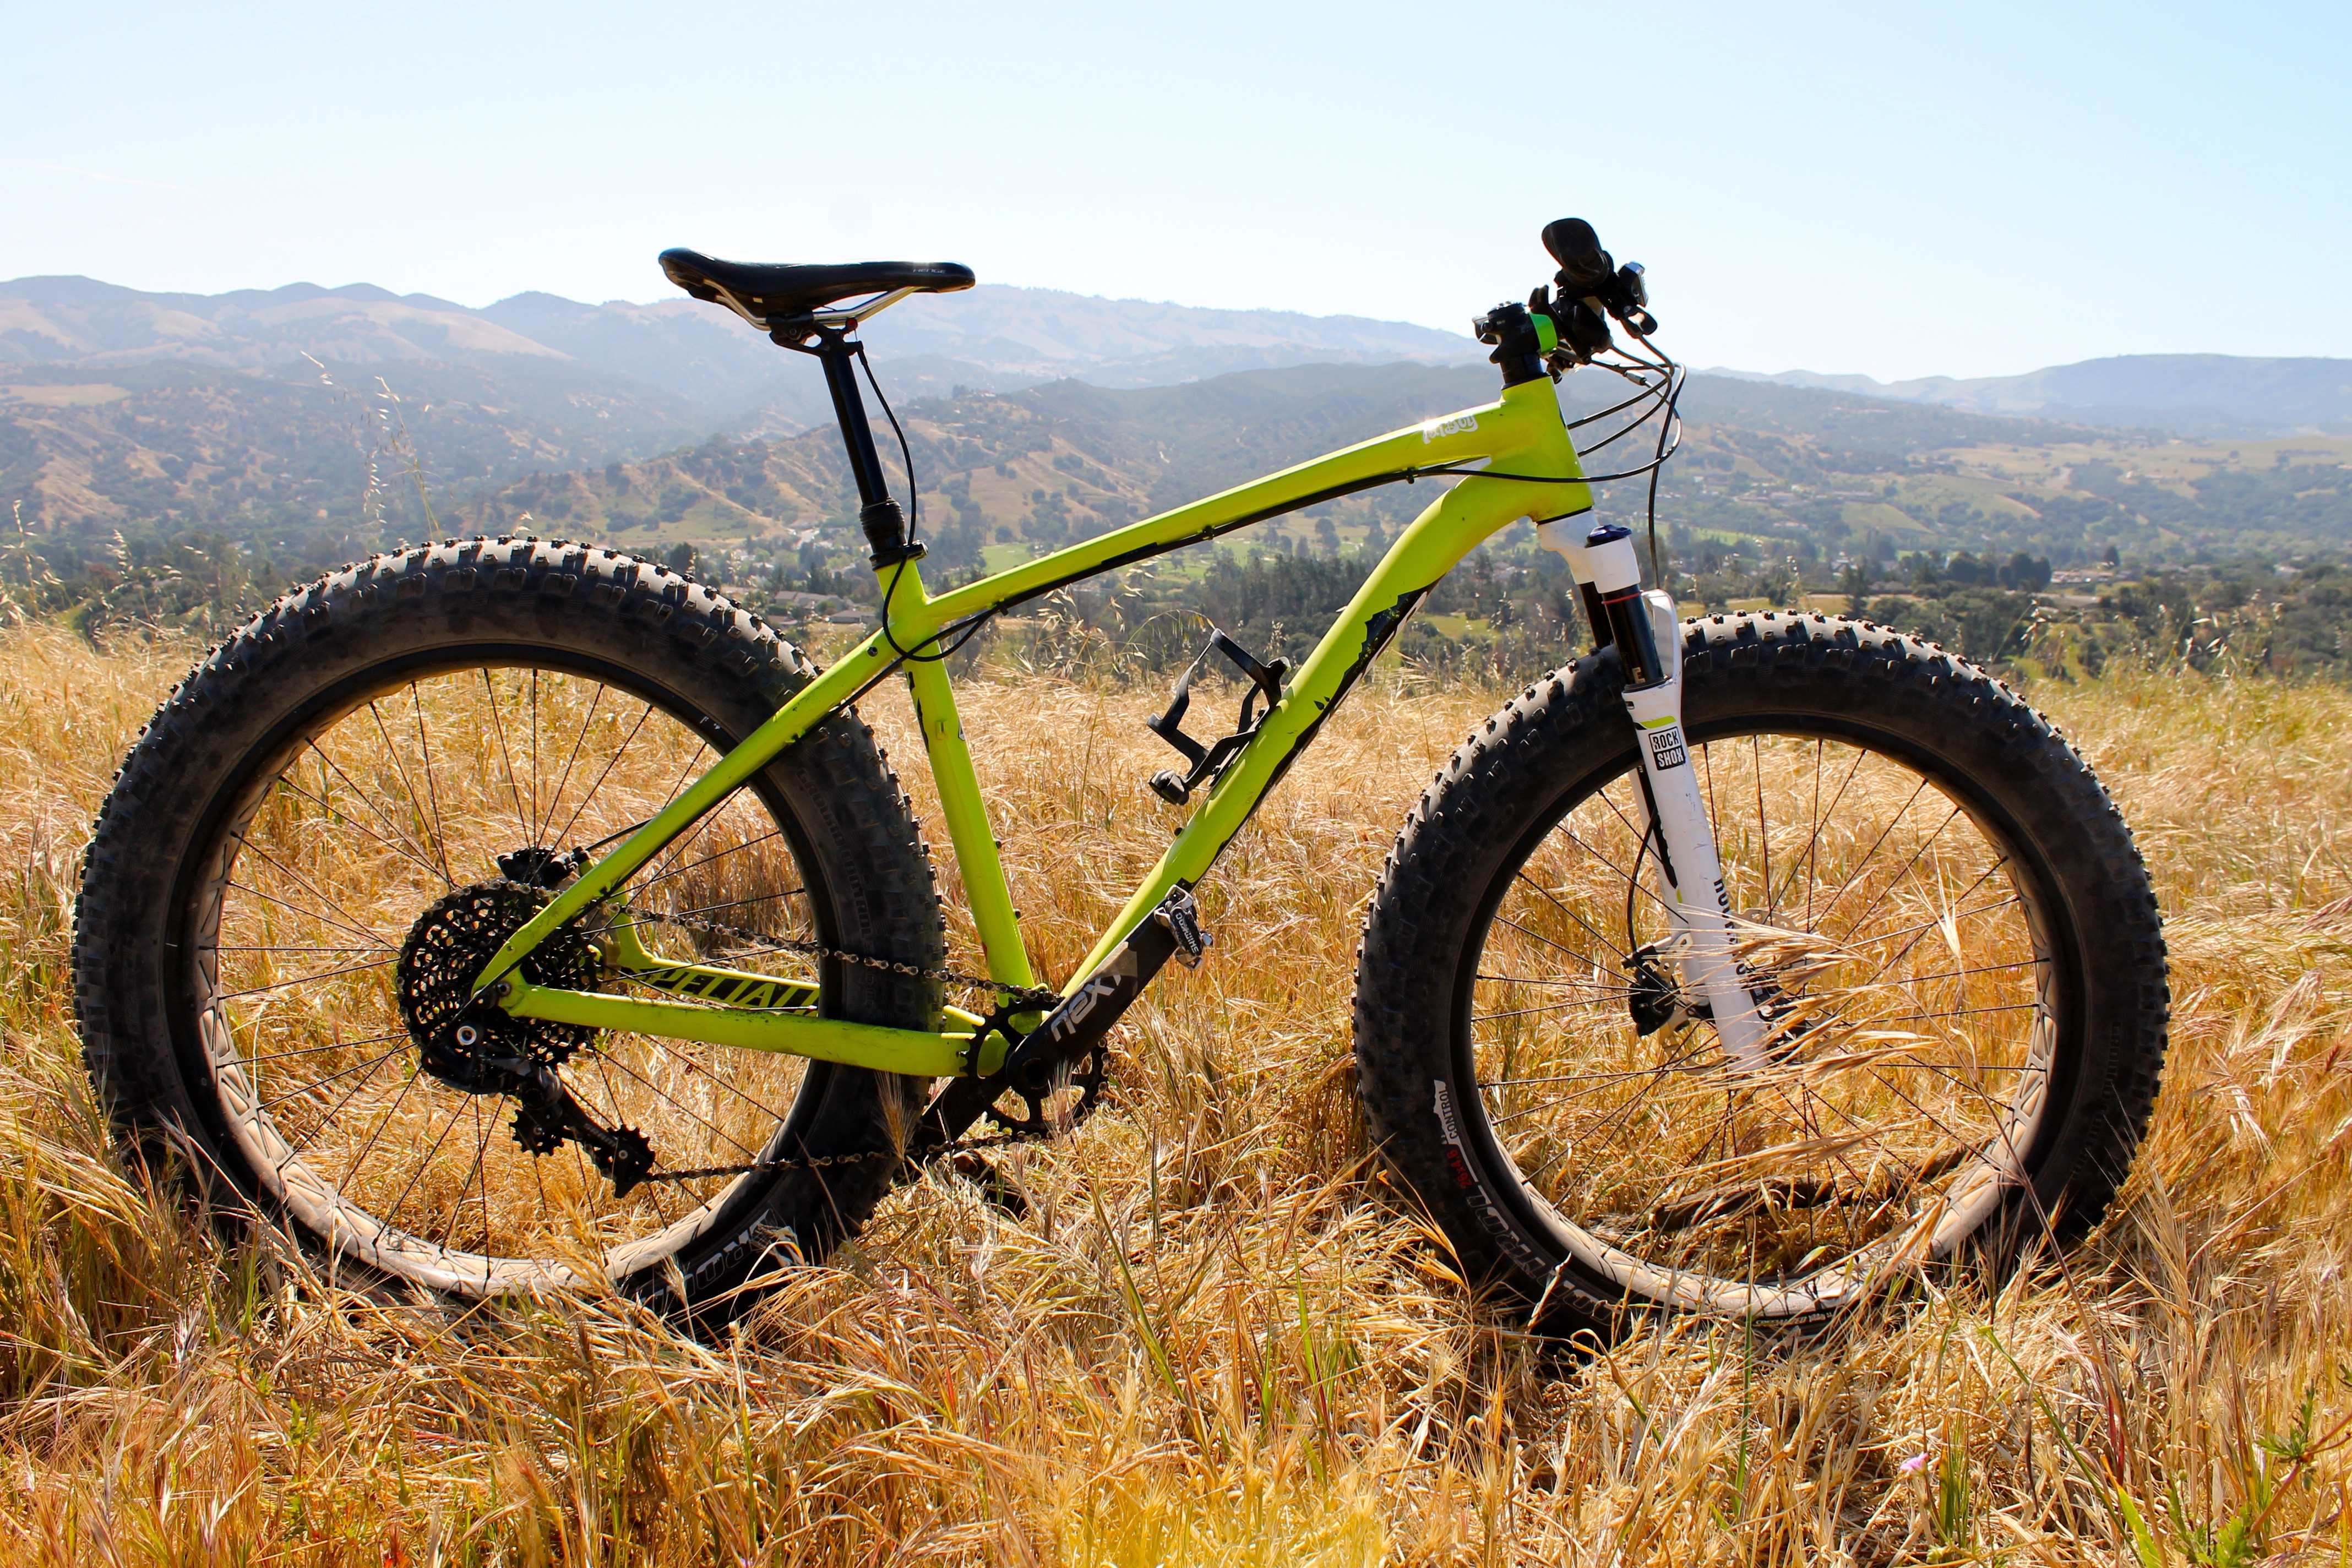 Test Ride Review: Specialized Fatboy Pro Fat Bike